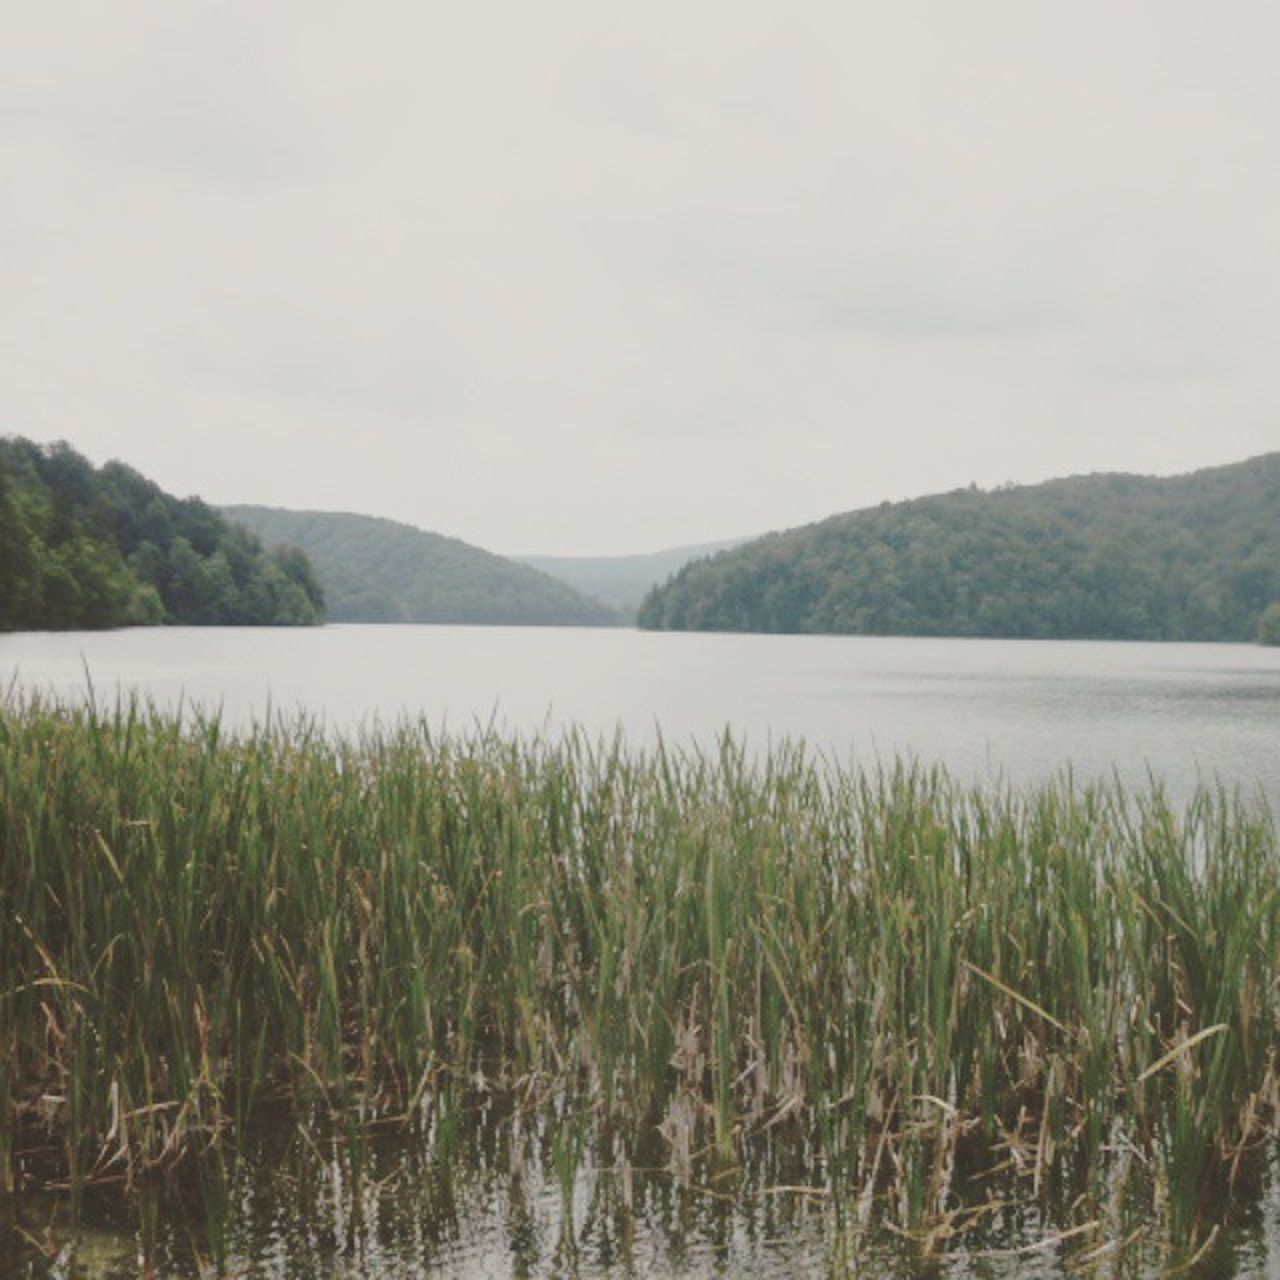 nature, lake, mountain, tranquility, water, beauty in nature, growth, scenics, tranquil scene, sky, no people, outdoors, day, landscape, plant, grass